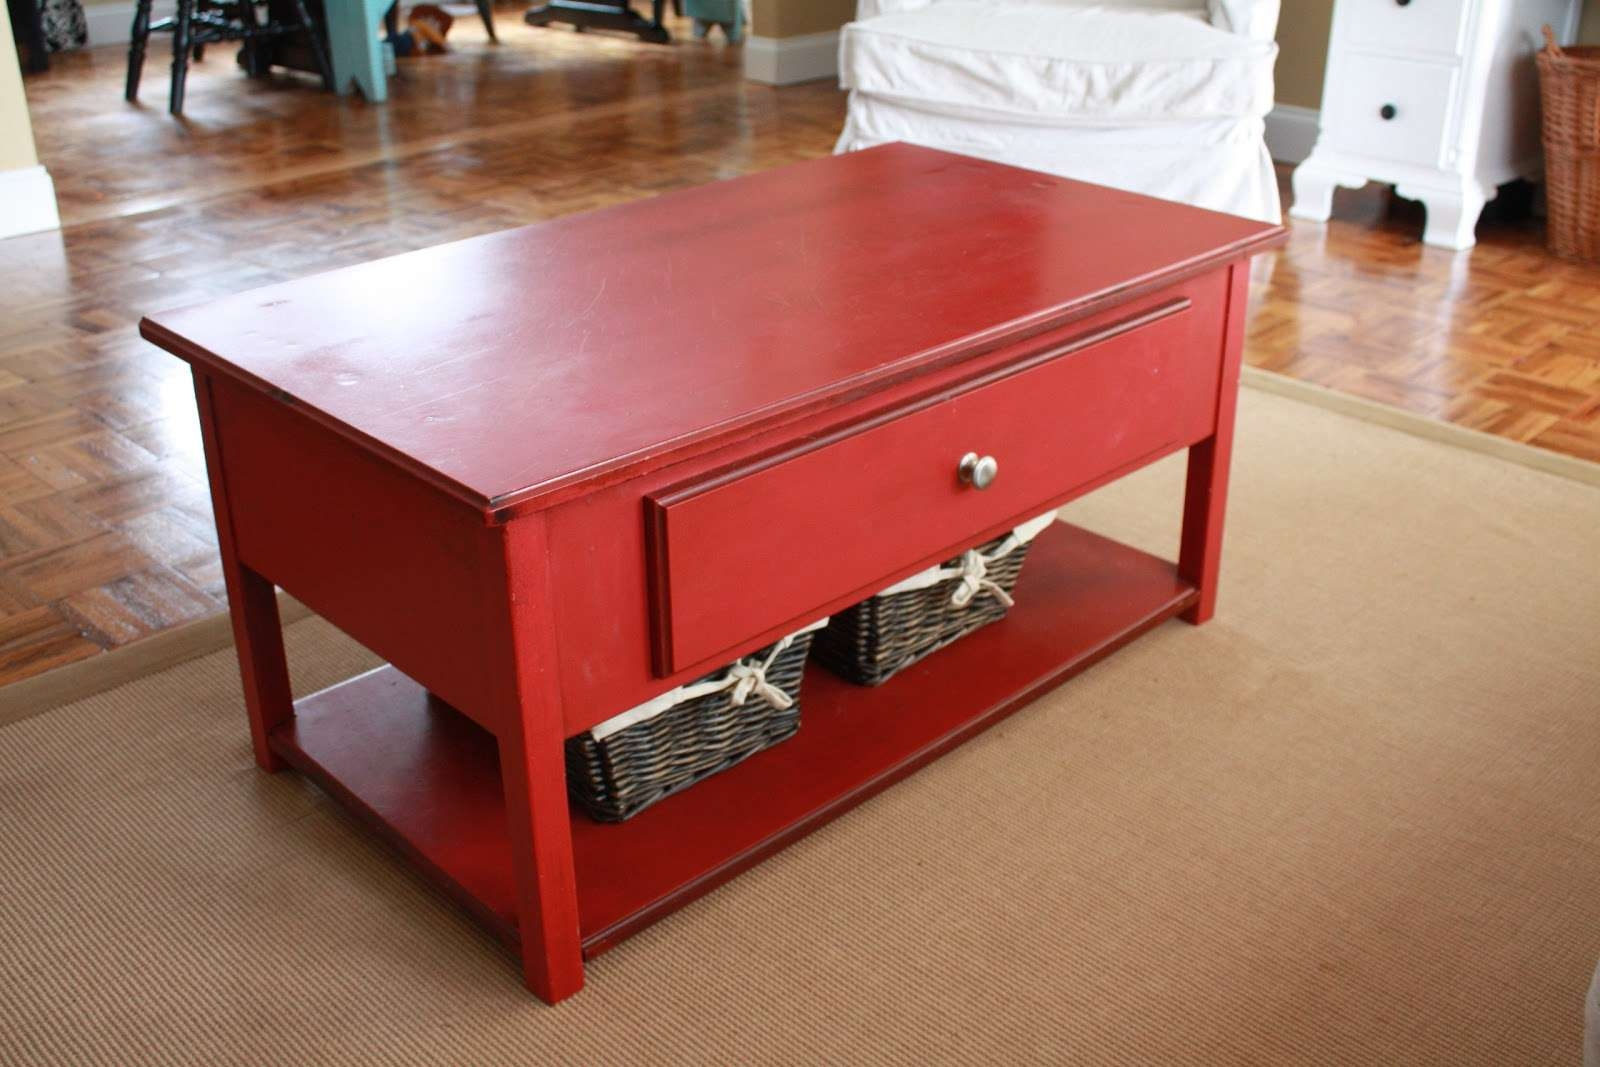 Preferred Red Coffee Tables In It's Just Laine: The Amazing Red Coffee Table (View 13 of 20)